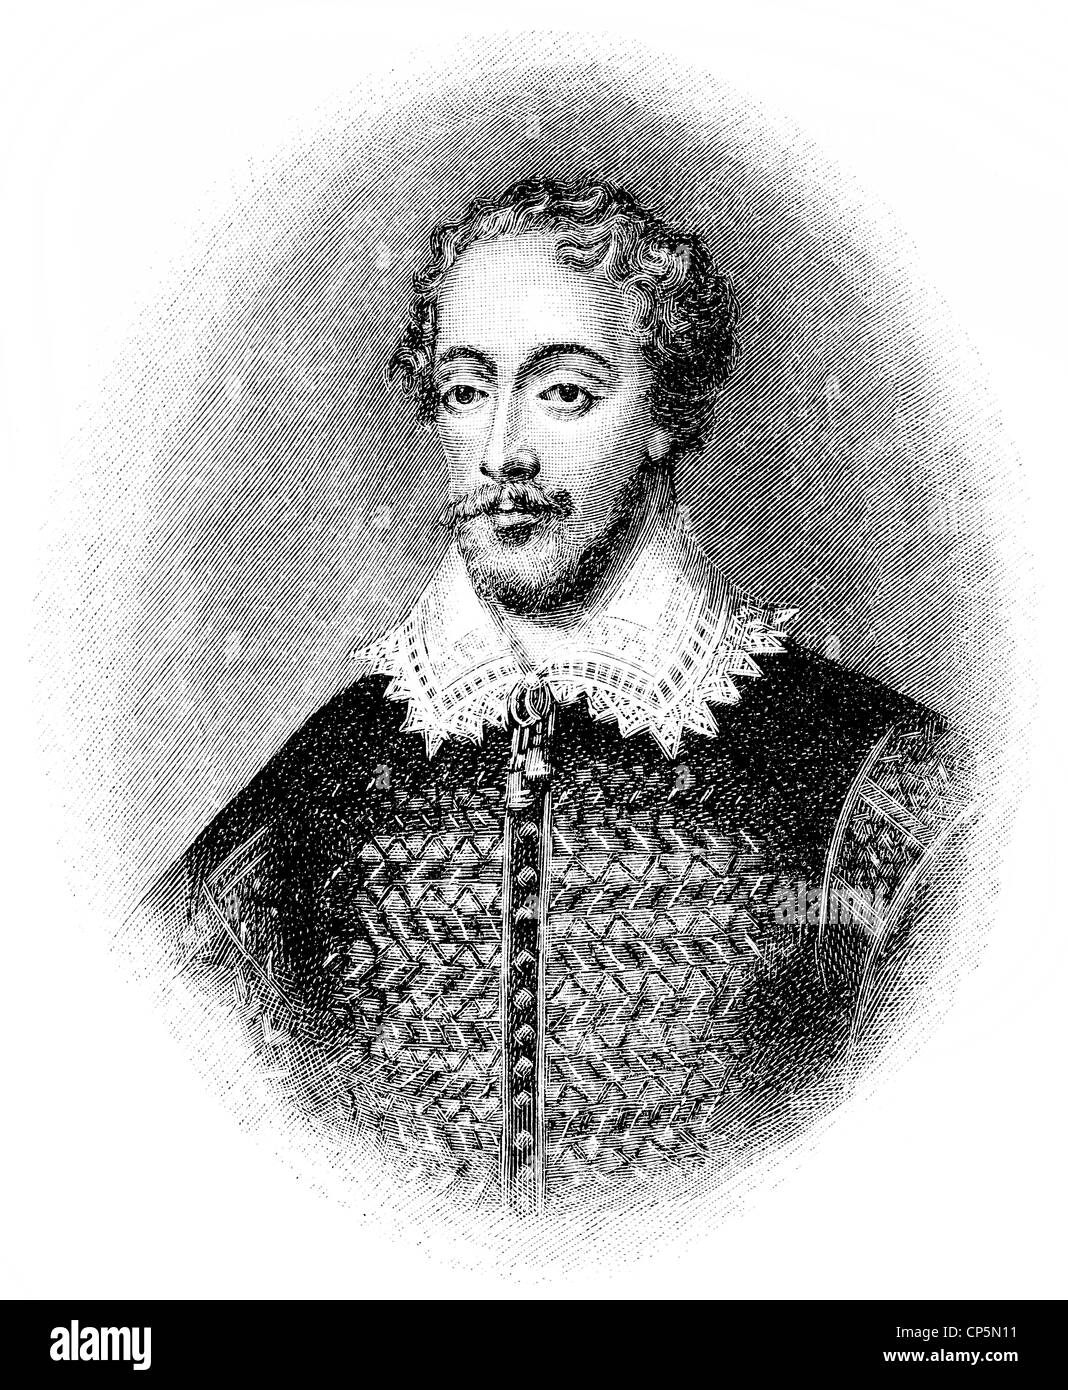 Edmund Spenser, ca. 1552 - 1599, an English poet - Stock Image